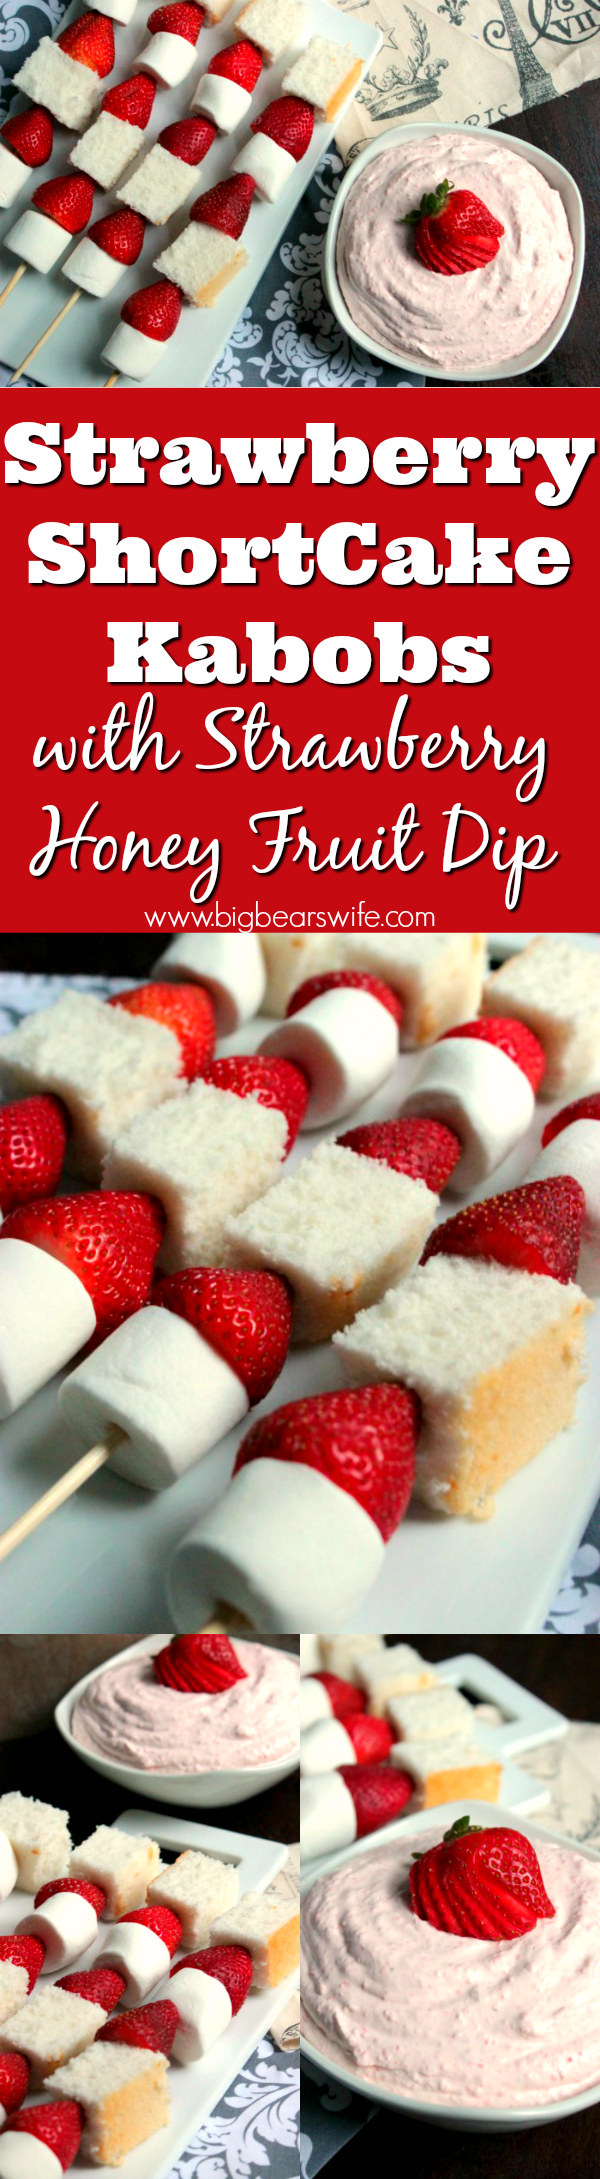 Strawberry ShortCake Kabobs with Strawberry Honey Fruit Dip